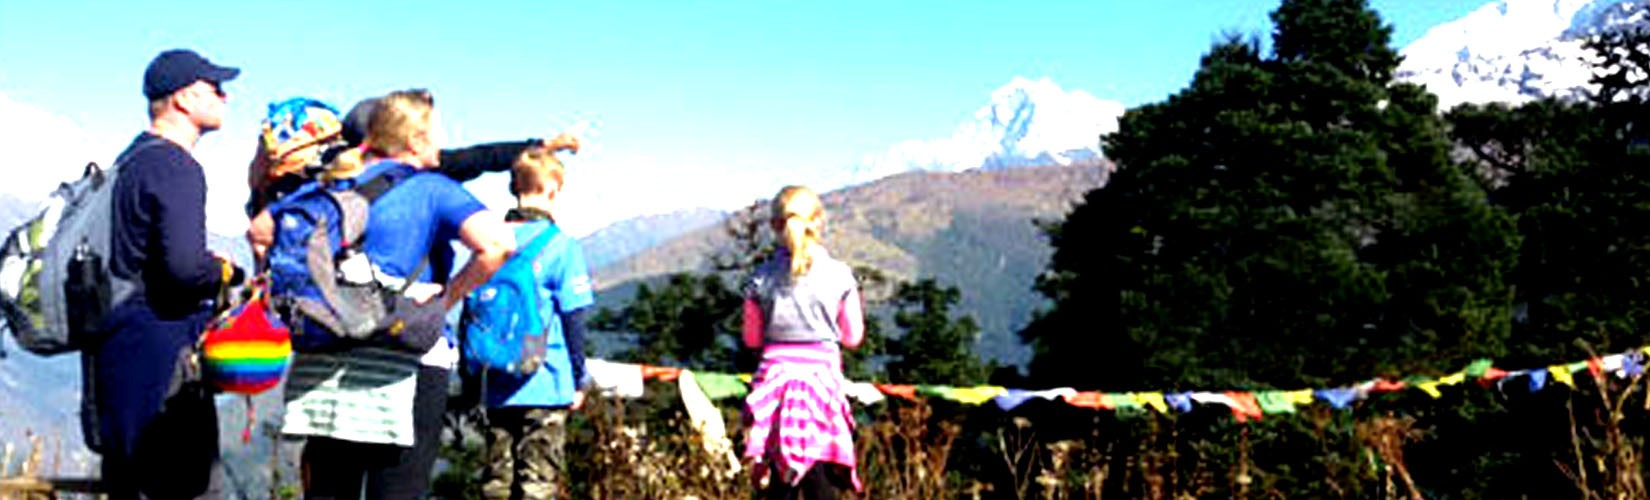 Nepal family Holiday Tour package | Reasonable Treks And Tour